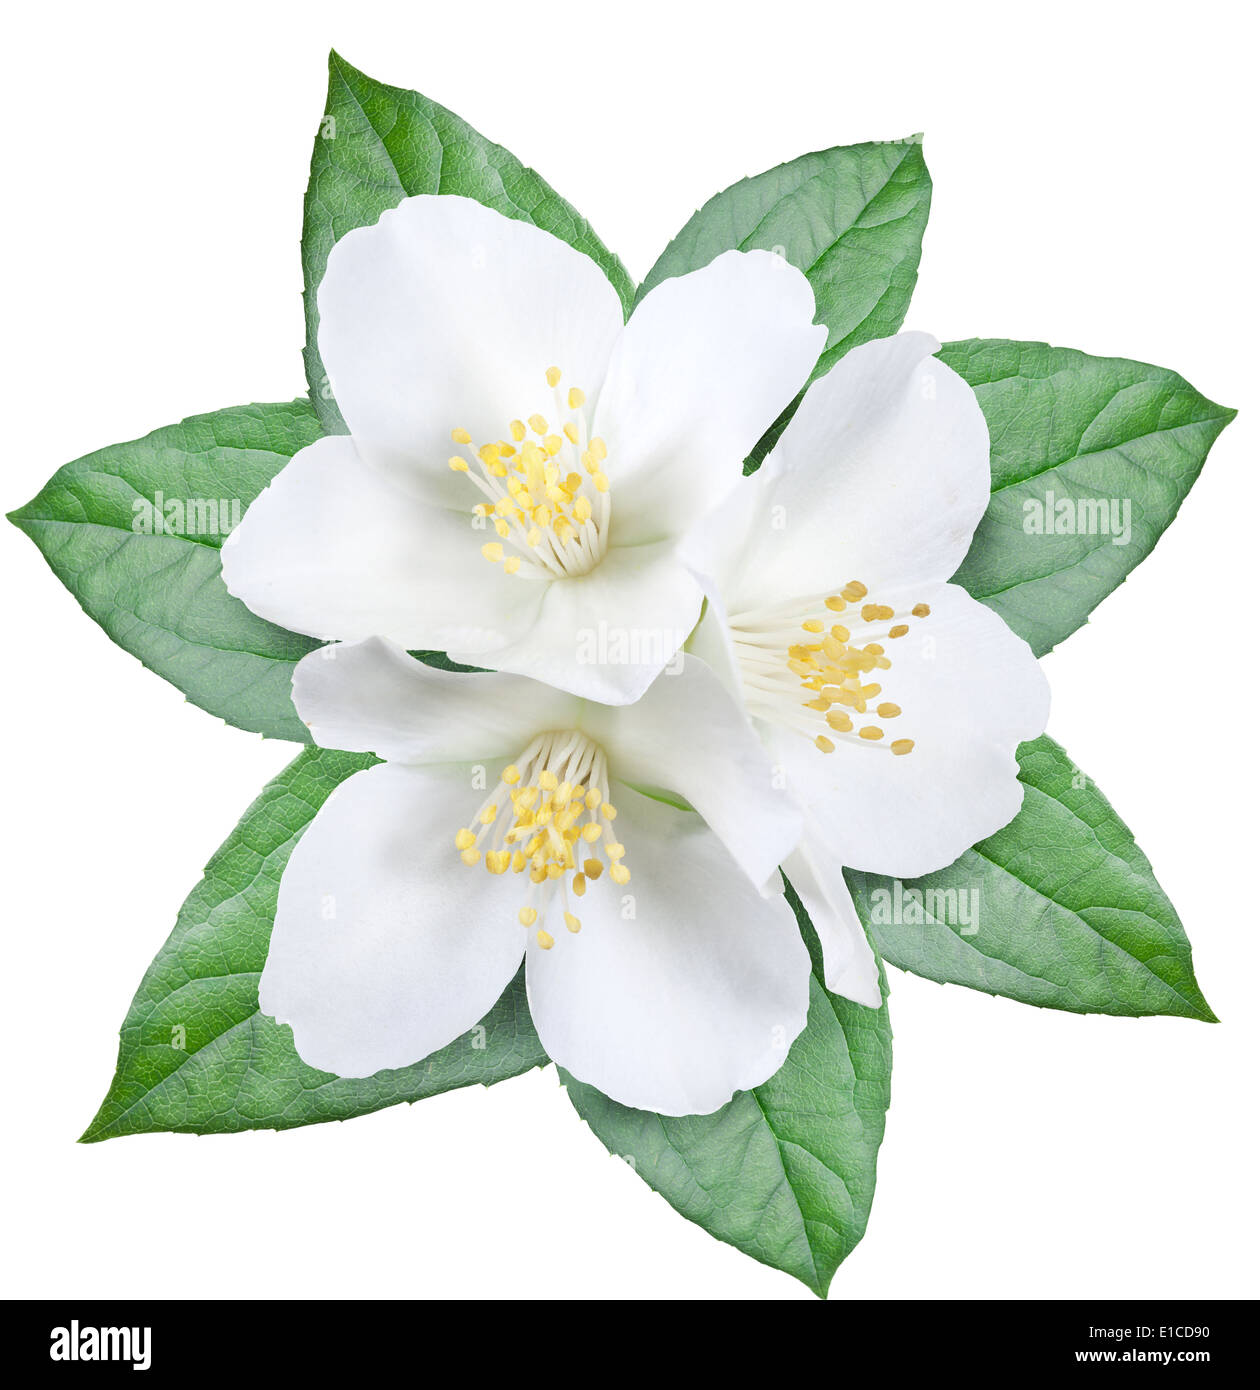 Blooming jasmine flower with leaves. File contains clipping path. - Stock Image